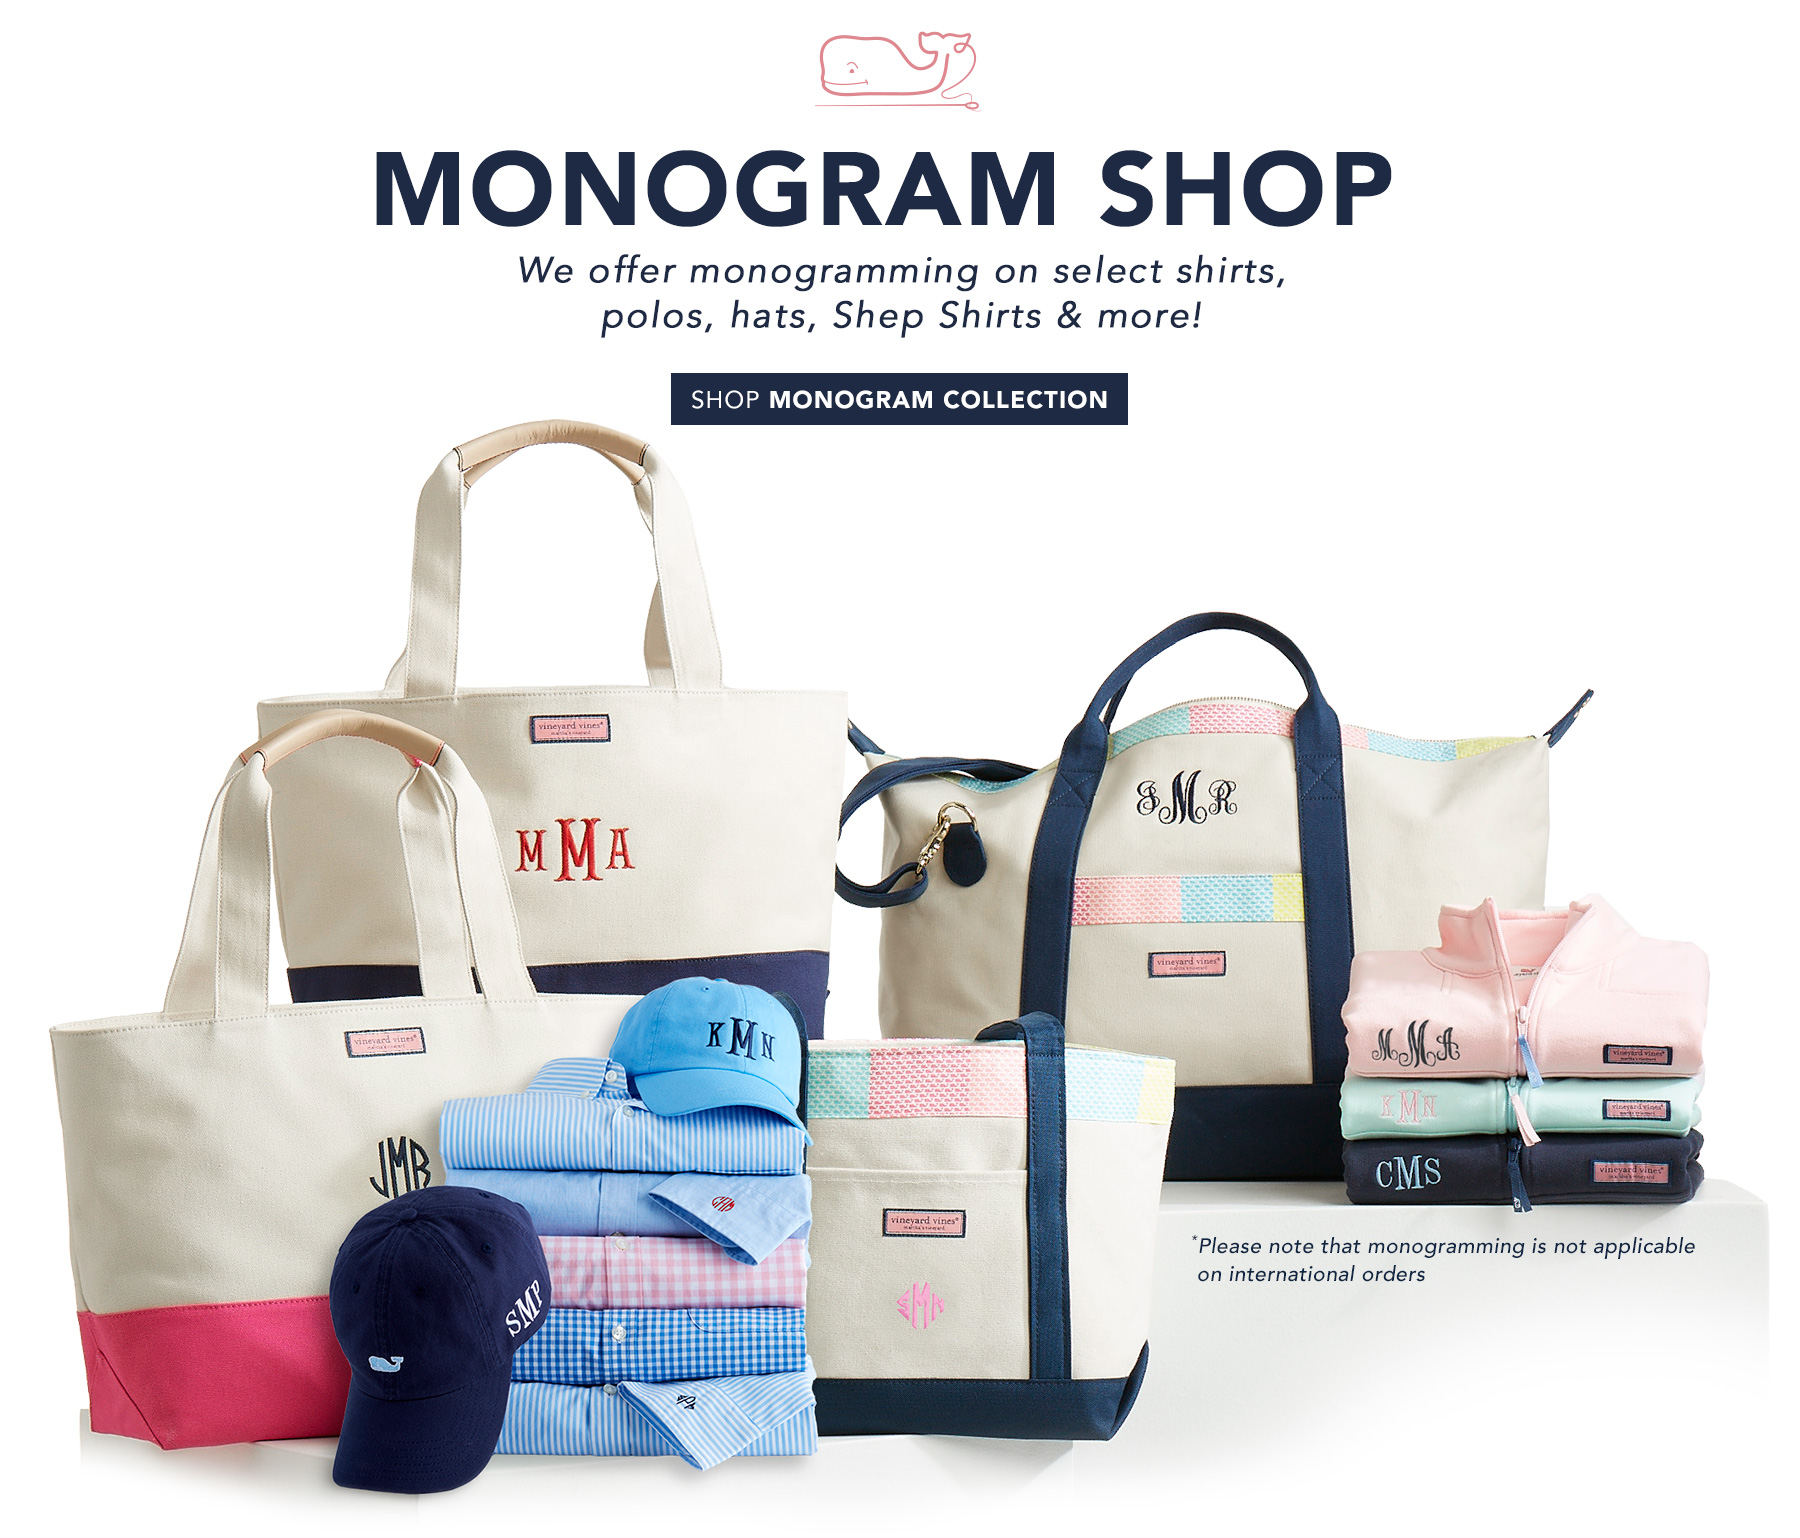 Monogram Shop: We offer monogramming on select shirts, polos, hats, Shep Shirts & more! Click here to shop Monogram Collection. Please note that monogramming is not applicable on international orders